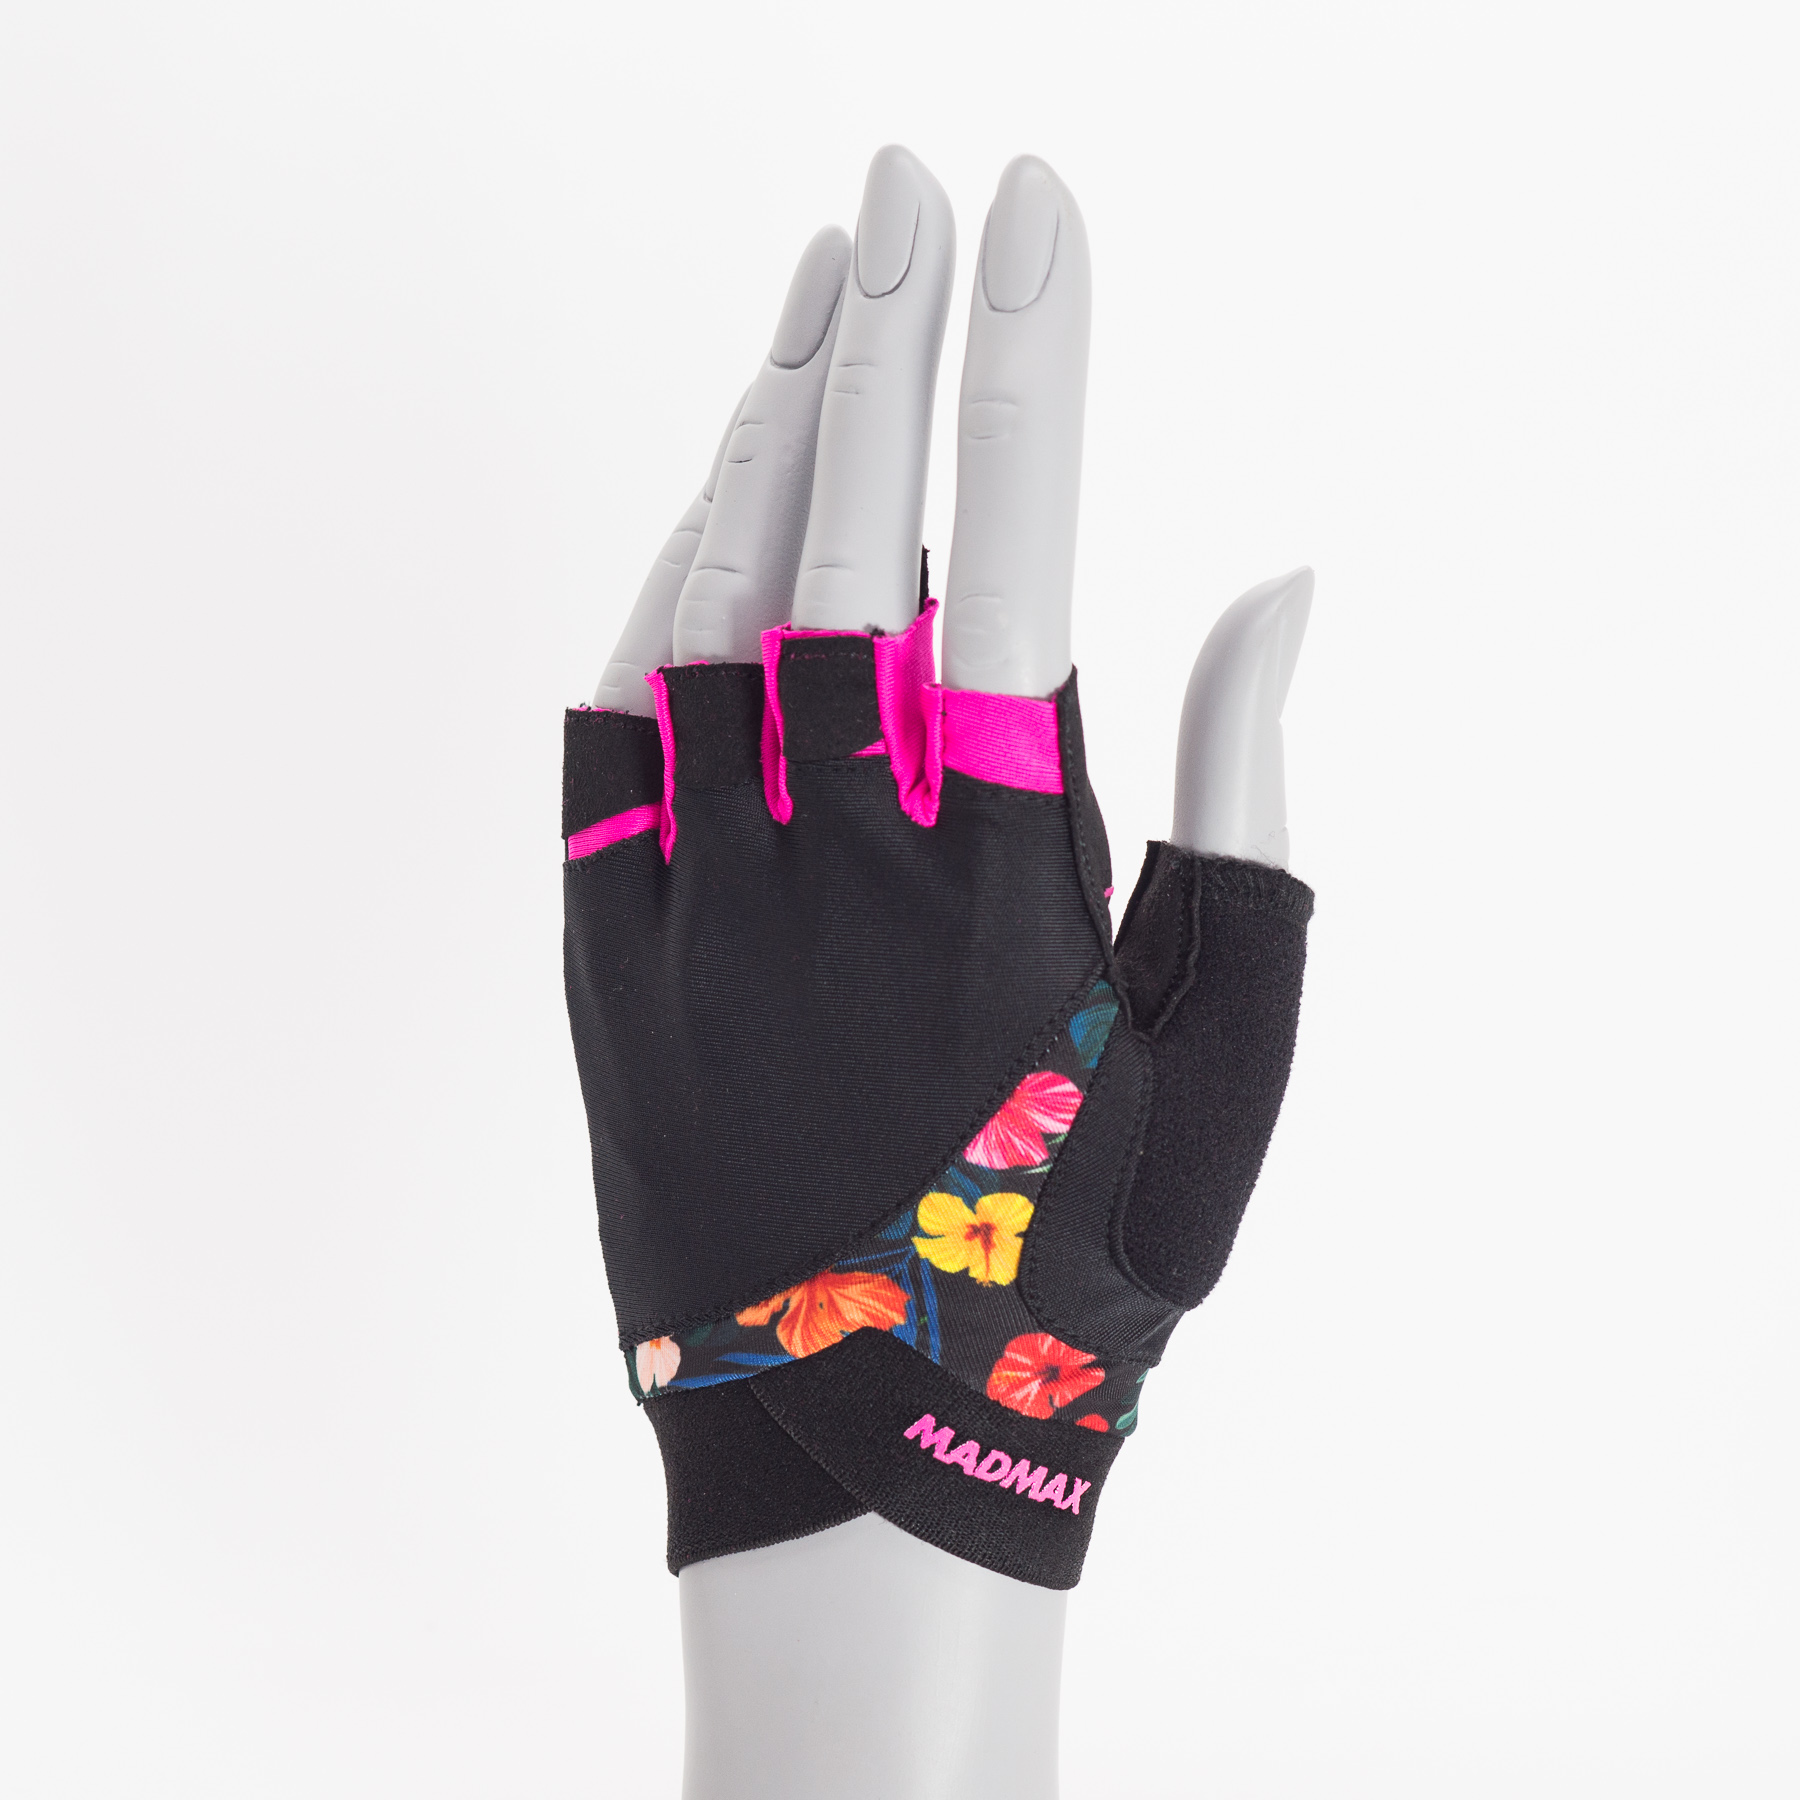 MFG-770 MADMAX Flower Power Gloves